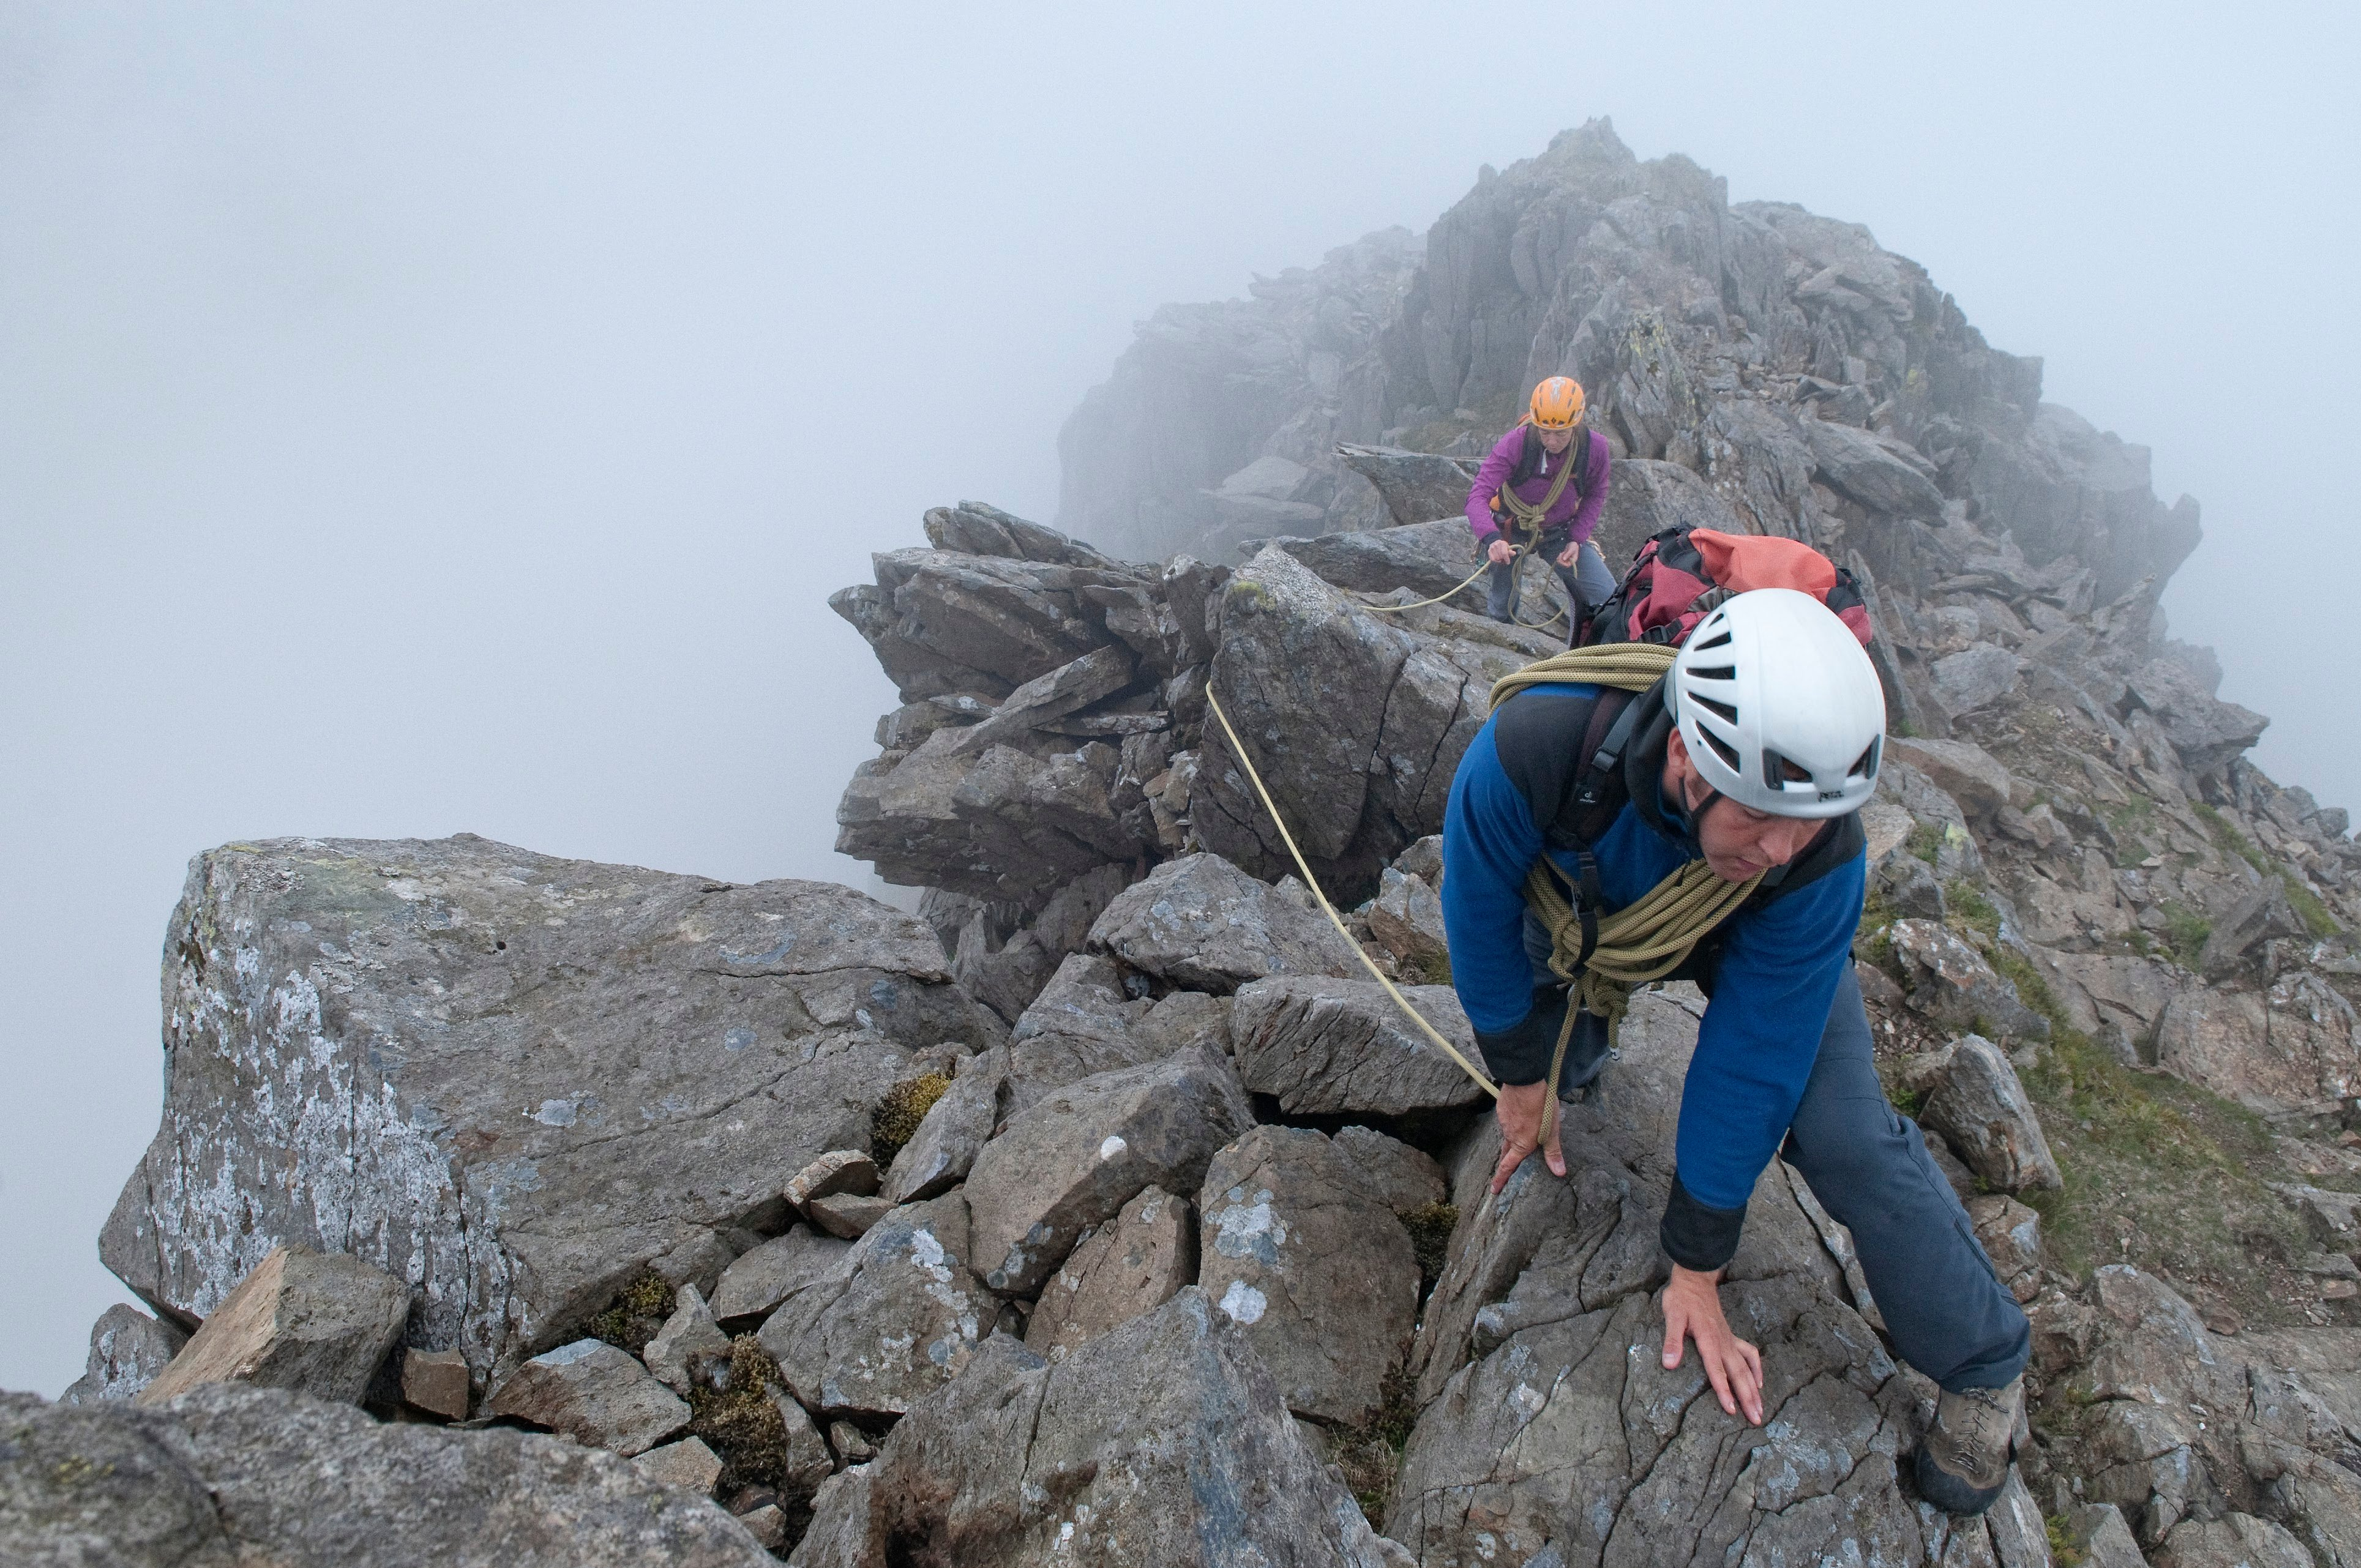 Scrambling on the Clogwyn y Person Arete, Snowdon